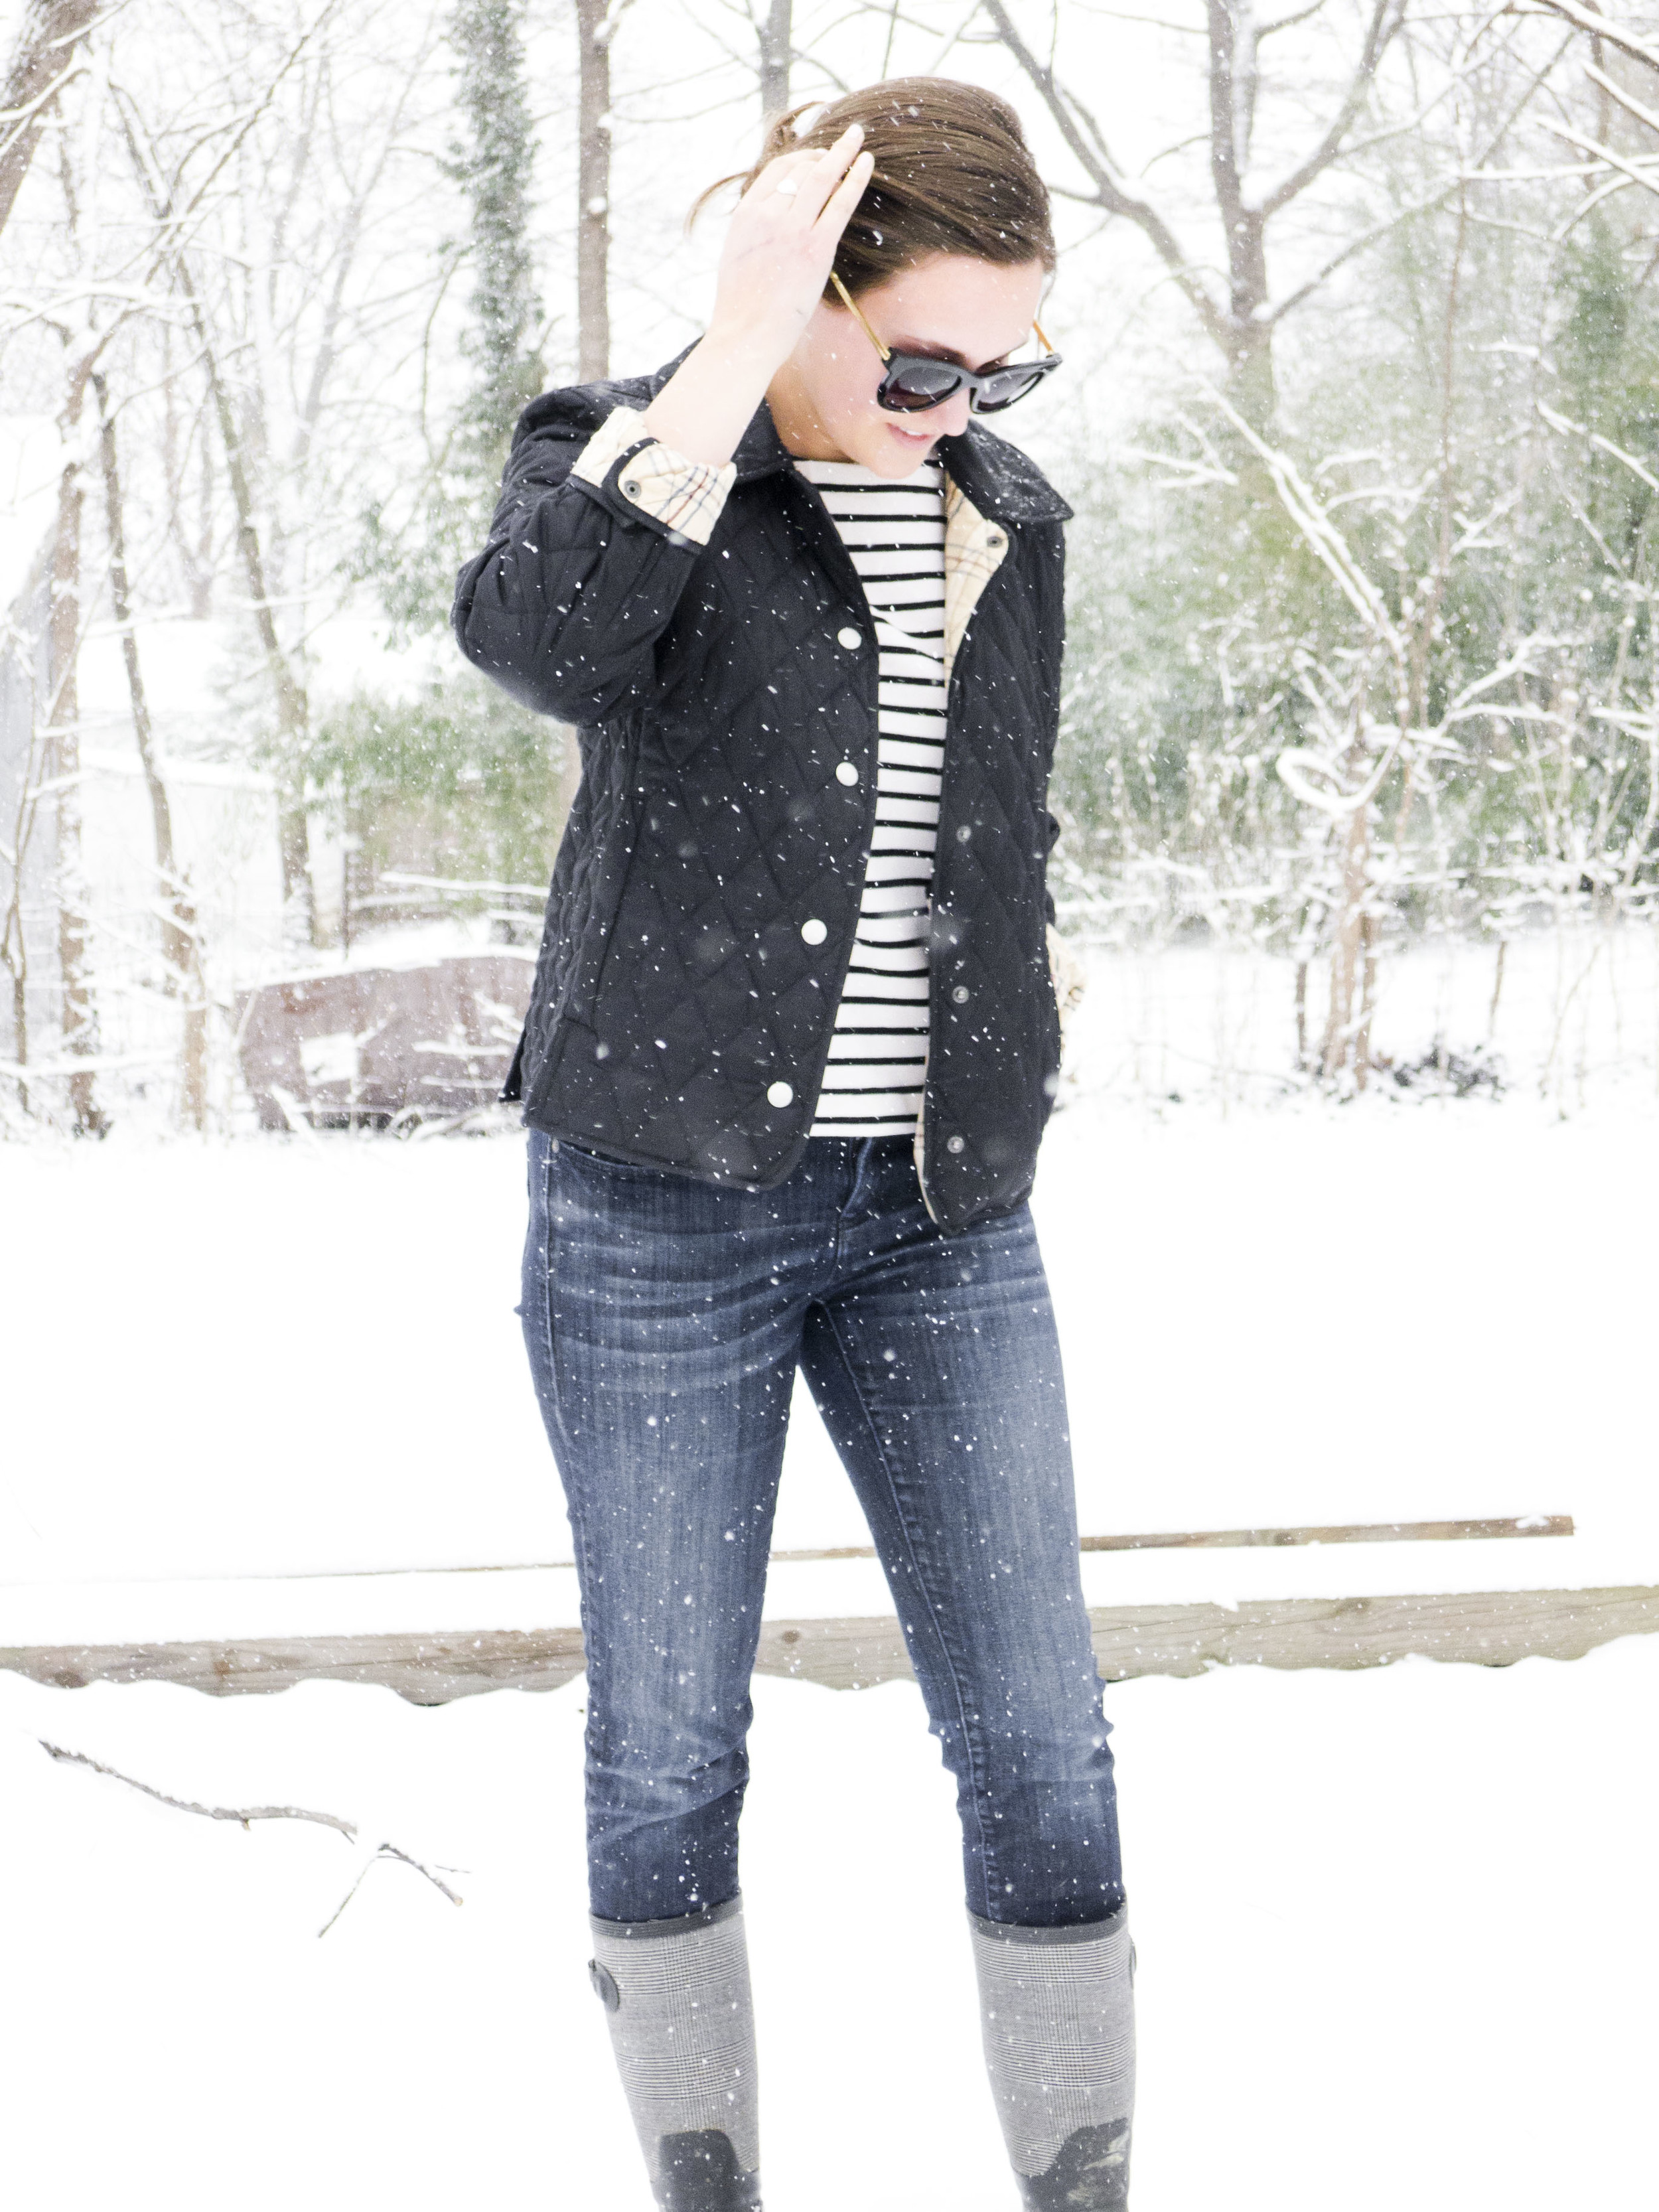 black and white striped shirt, boots, quilted jacket